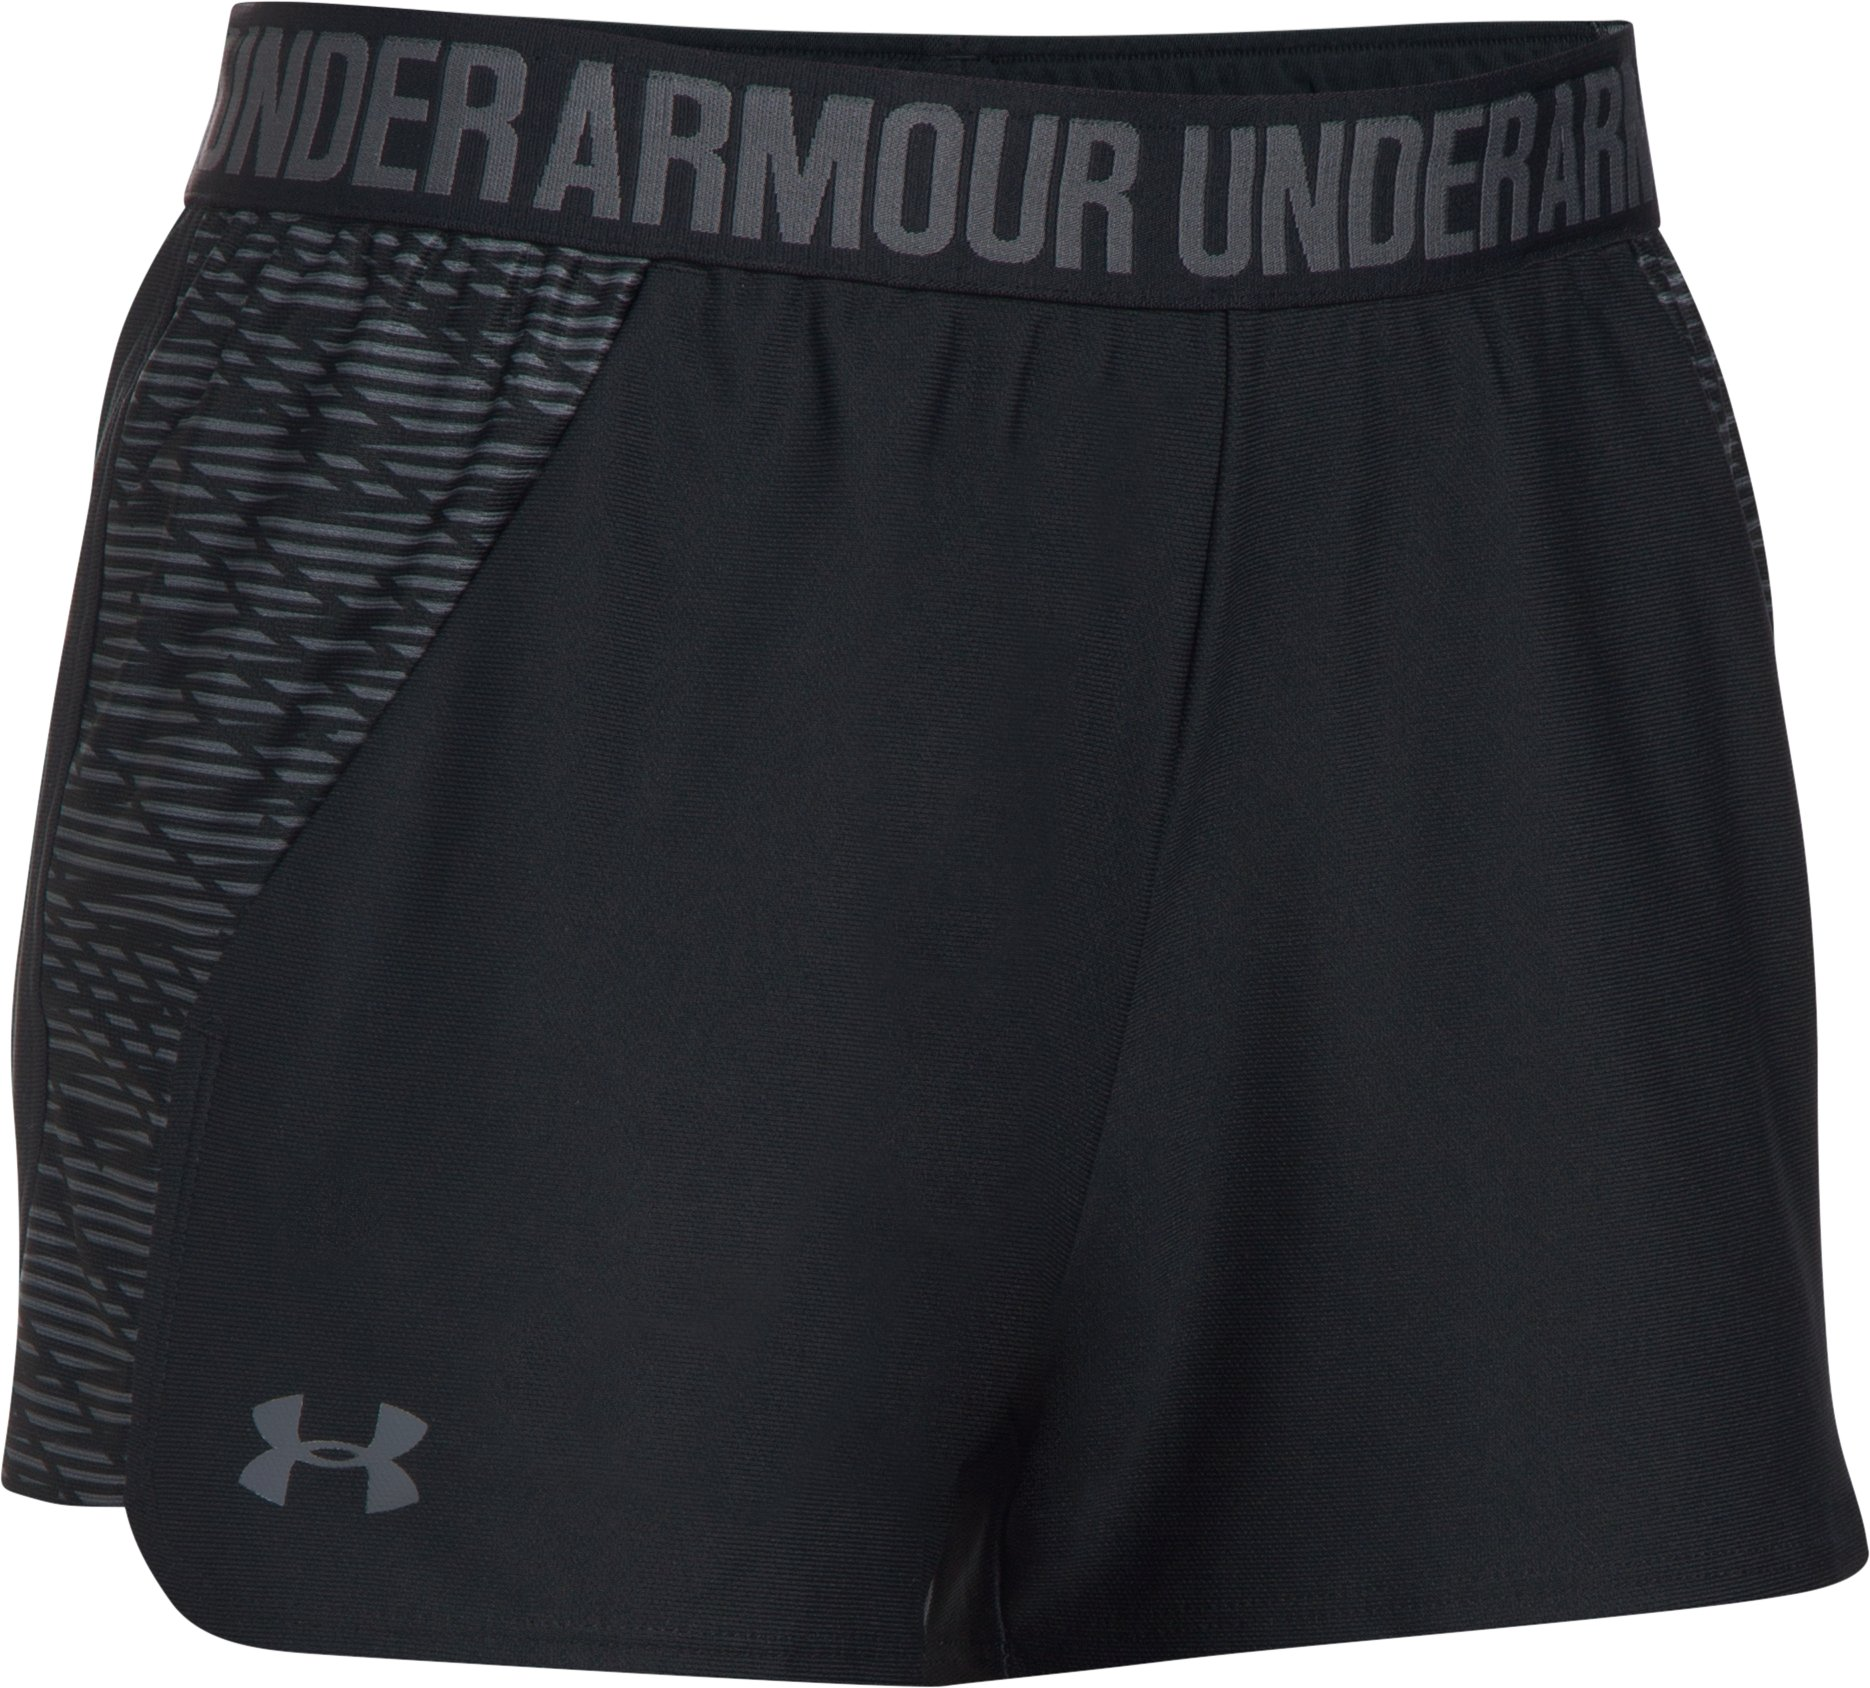 Women's UA Play Up Shorts 2.0 - Printed, Black ,